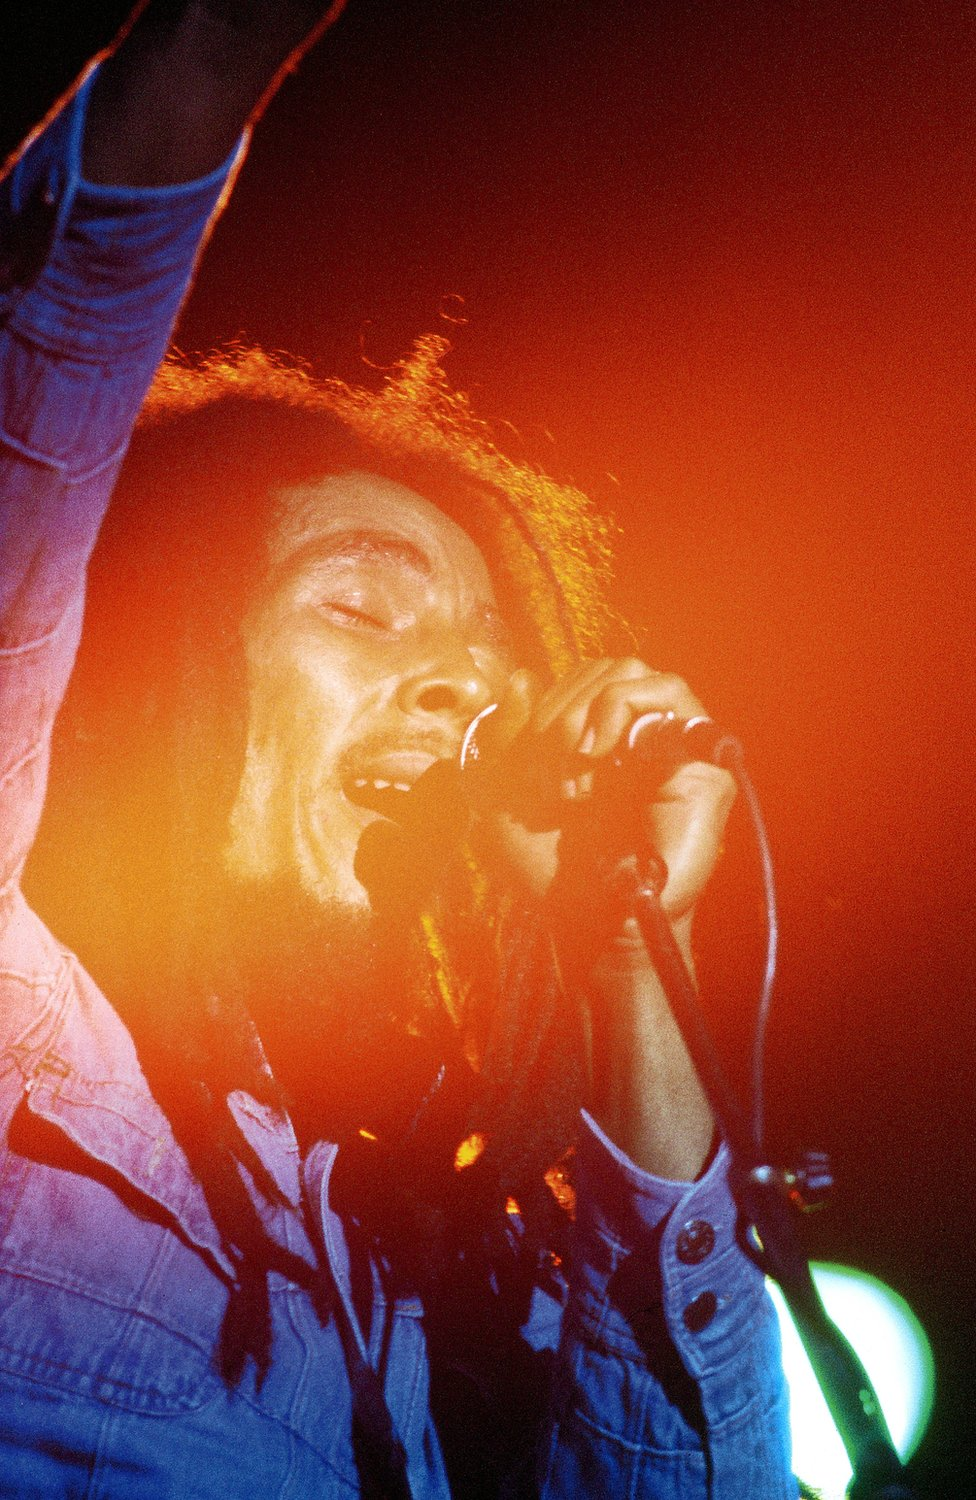 Bob Marley performing on stage in the US in 1979